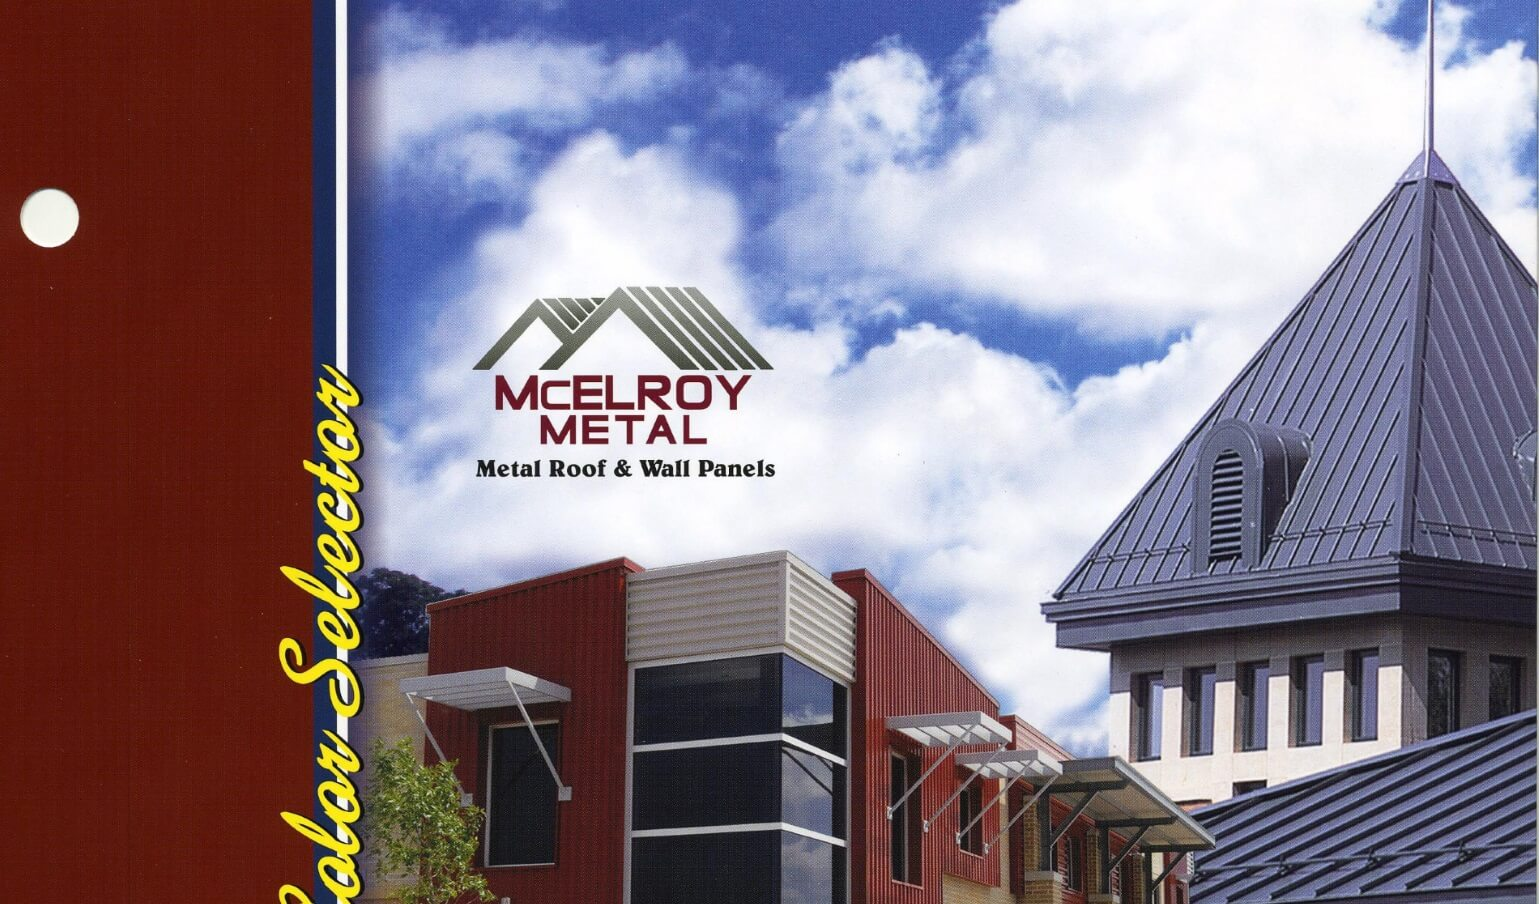 Mcelroy Metal Publishes Updated Architectural Colors Chart